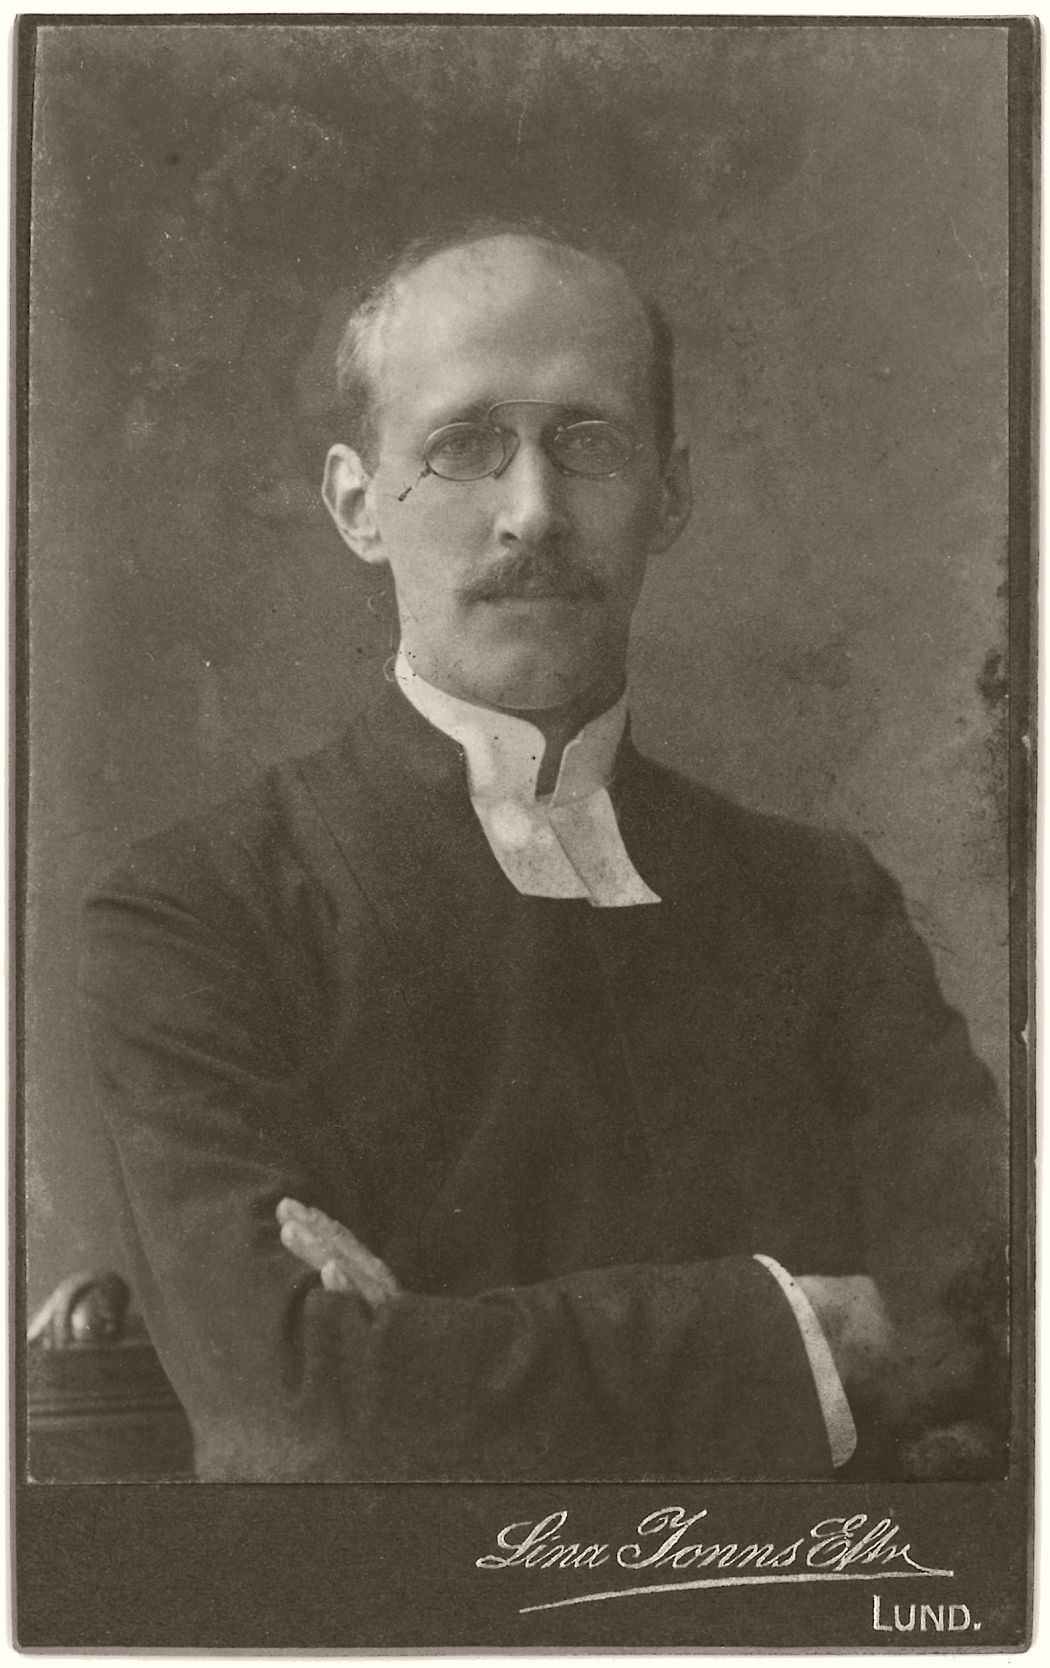 Edvard Magnus Rodhe (1878-1954), Swedish theologian, professor and bishop of Lund 1925-1948.